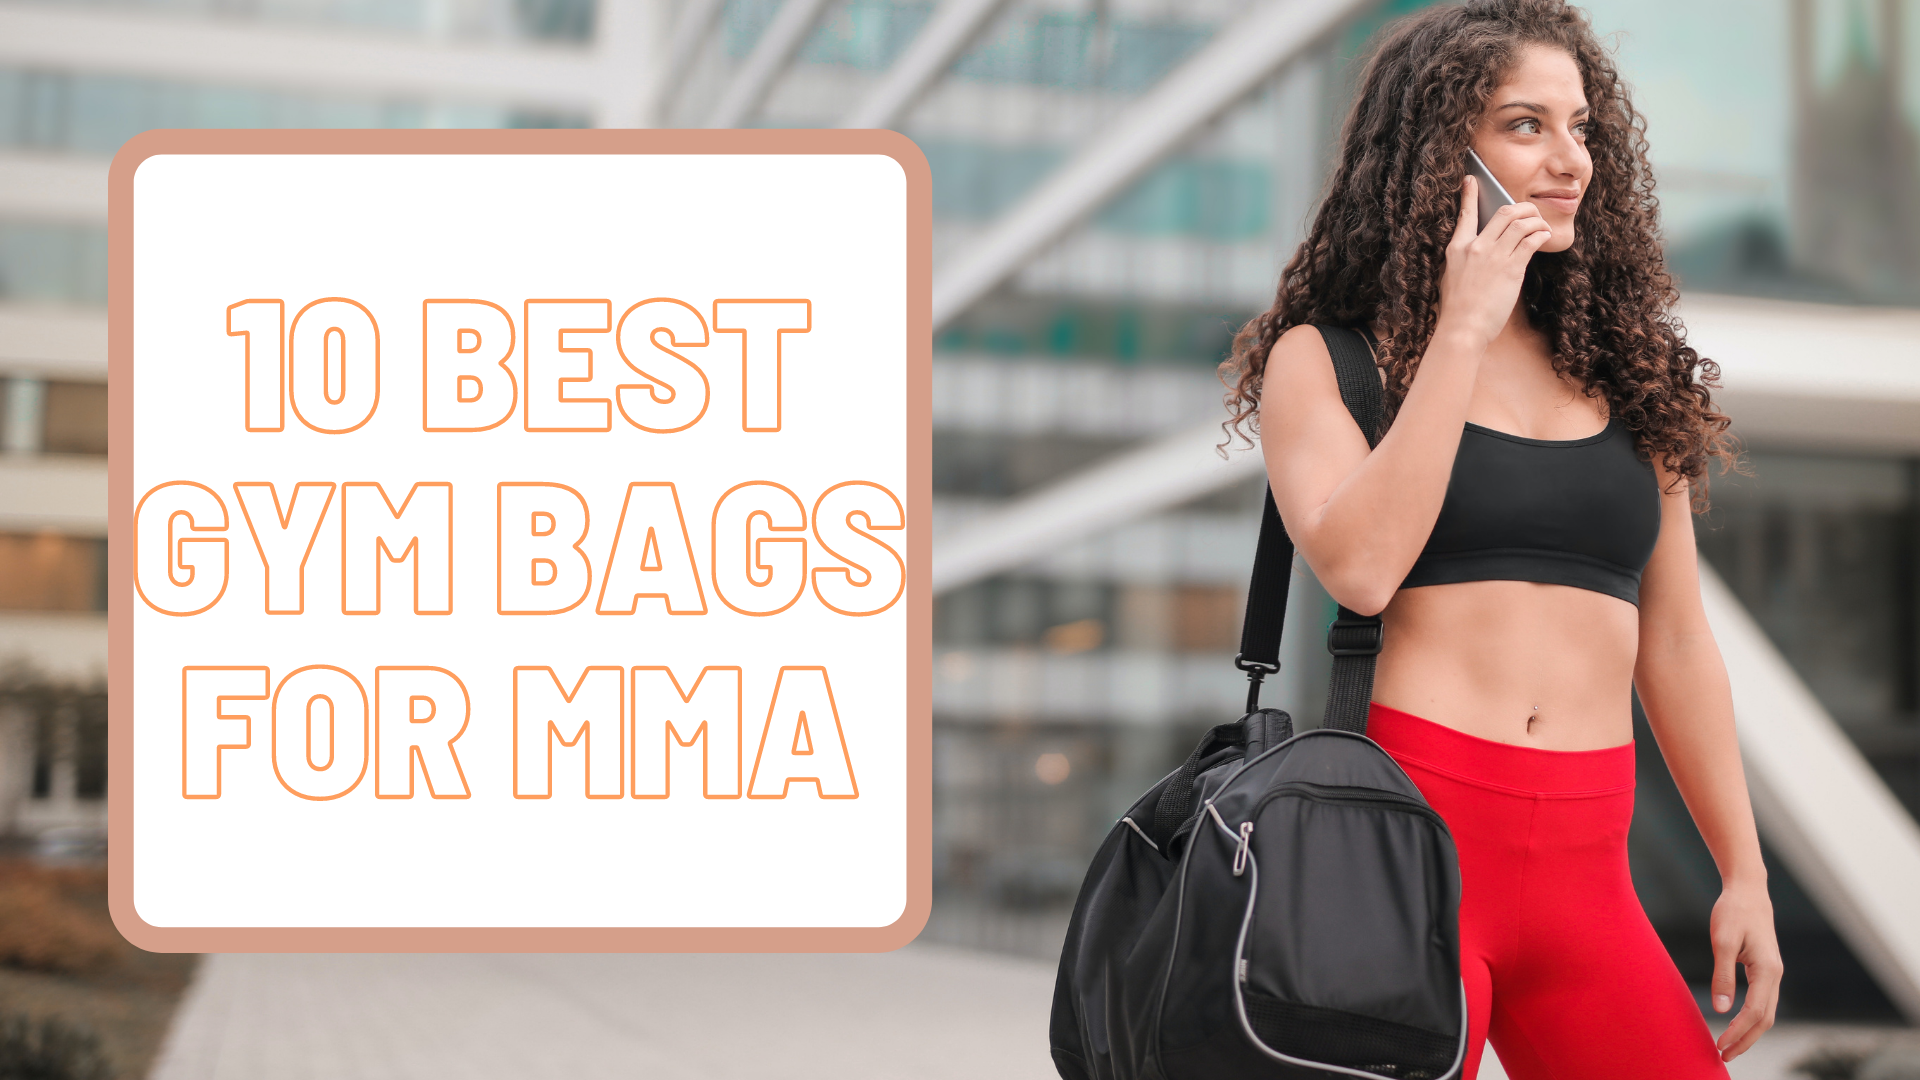 10 Best Gym Bags for MMA